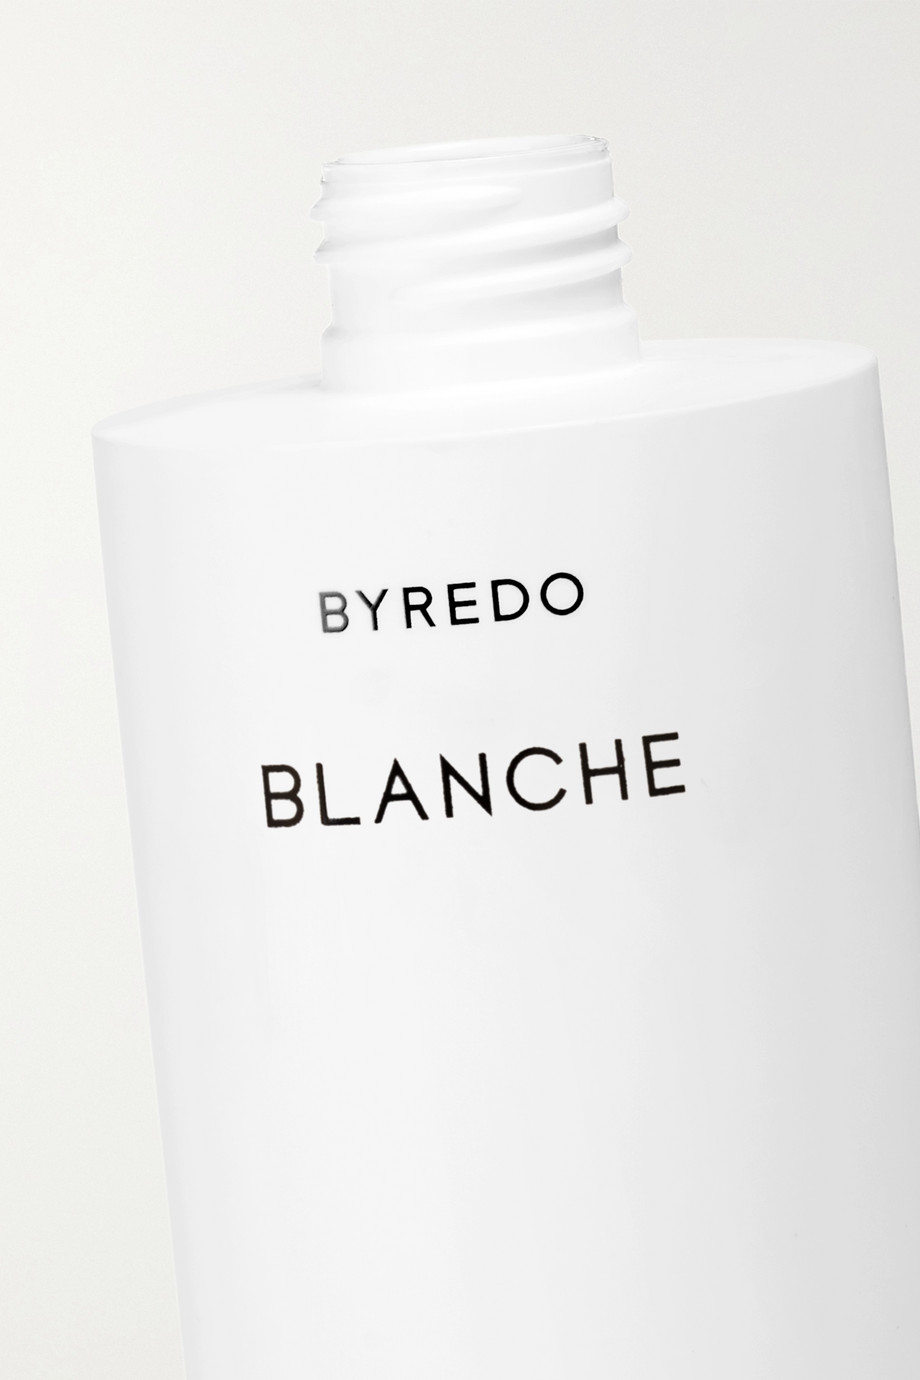 BYREDO Blanche Body Lotion, 225ml